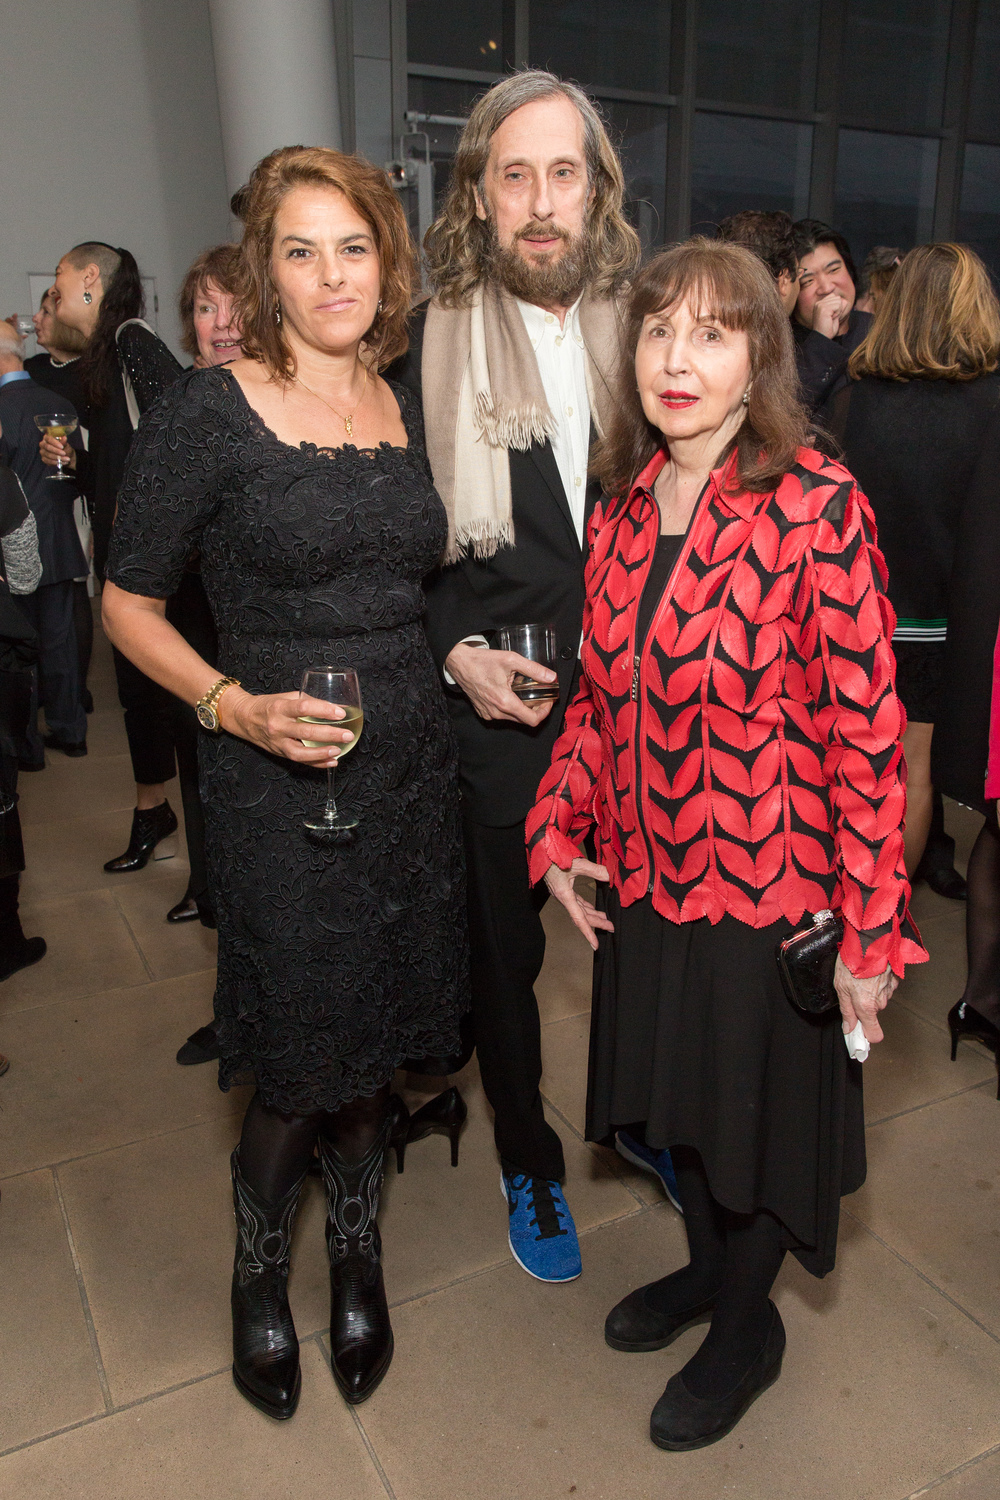 Tracey Emin, Jerry Gorovoy and Lois Plehn.jpg